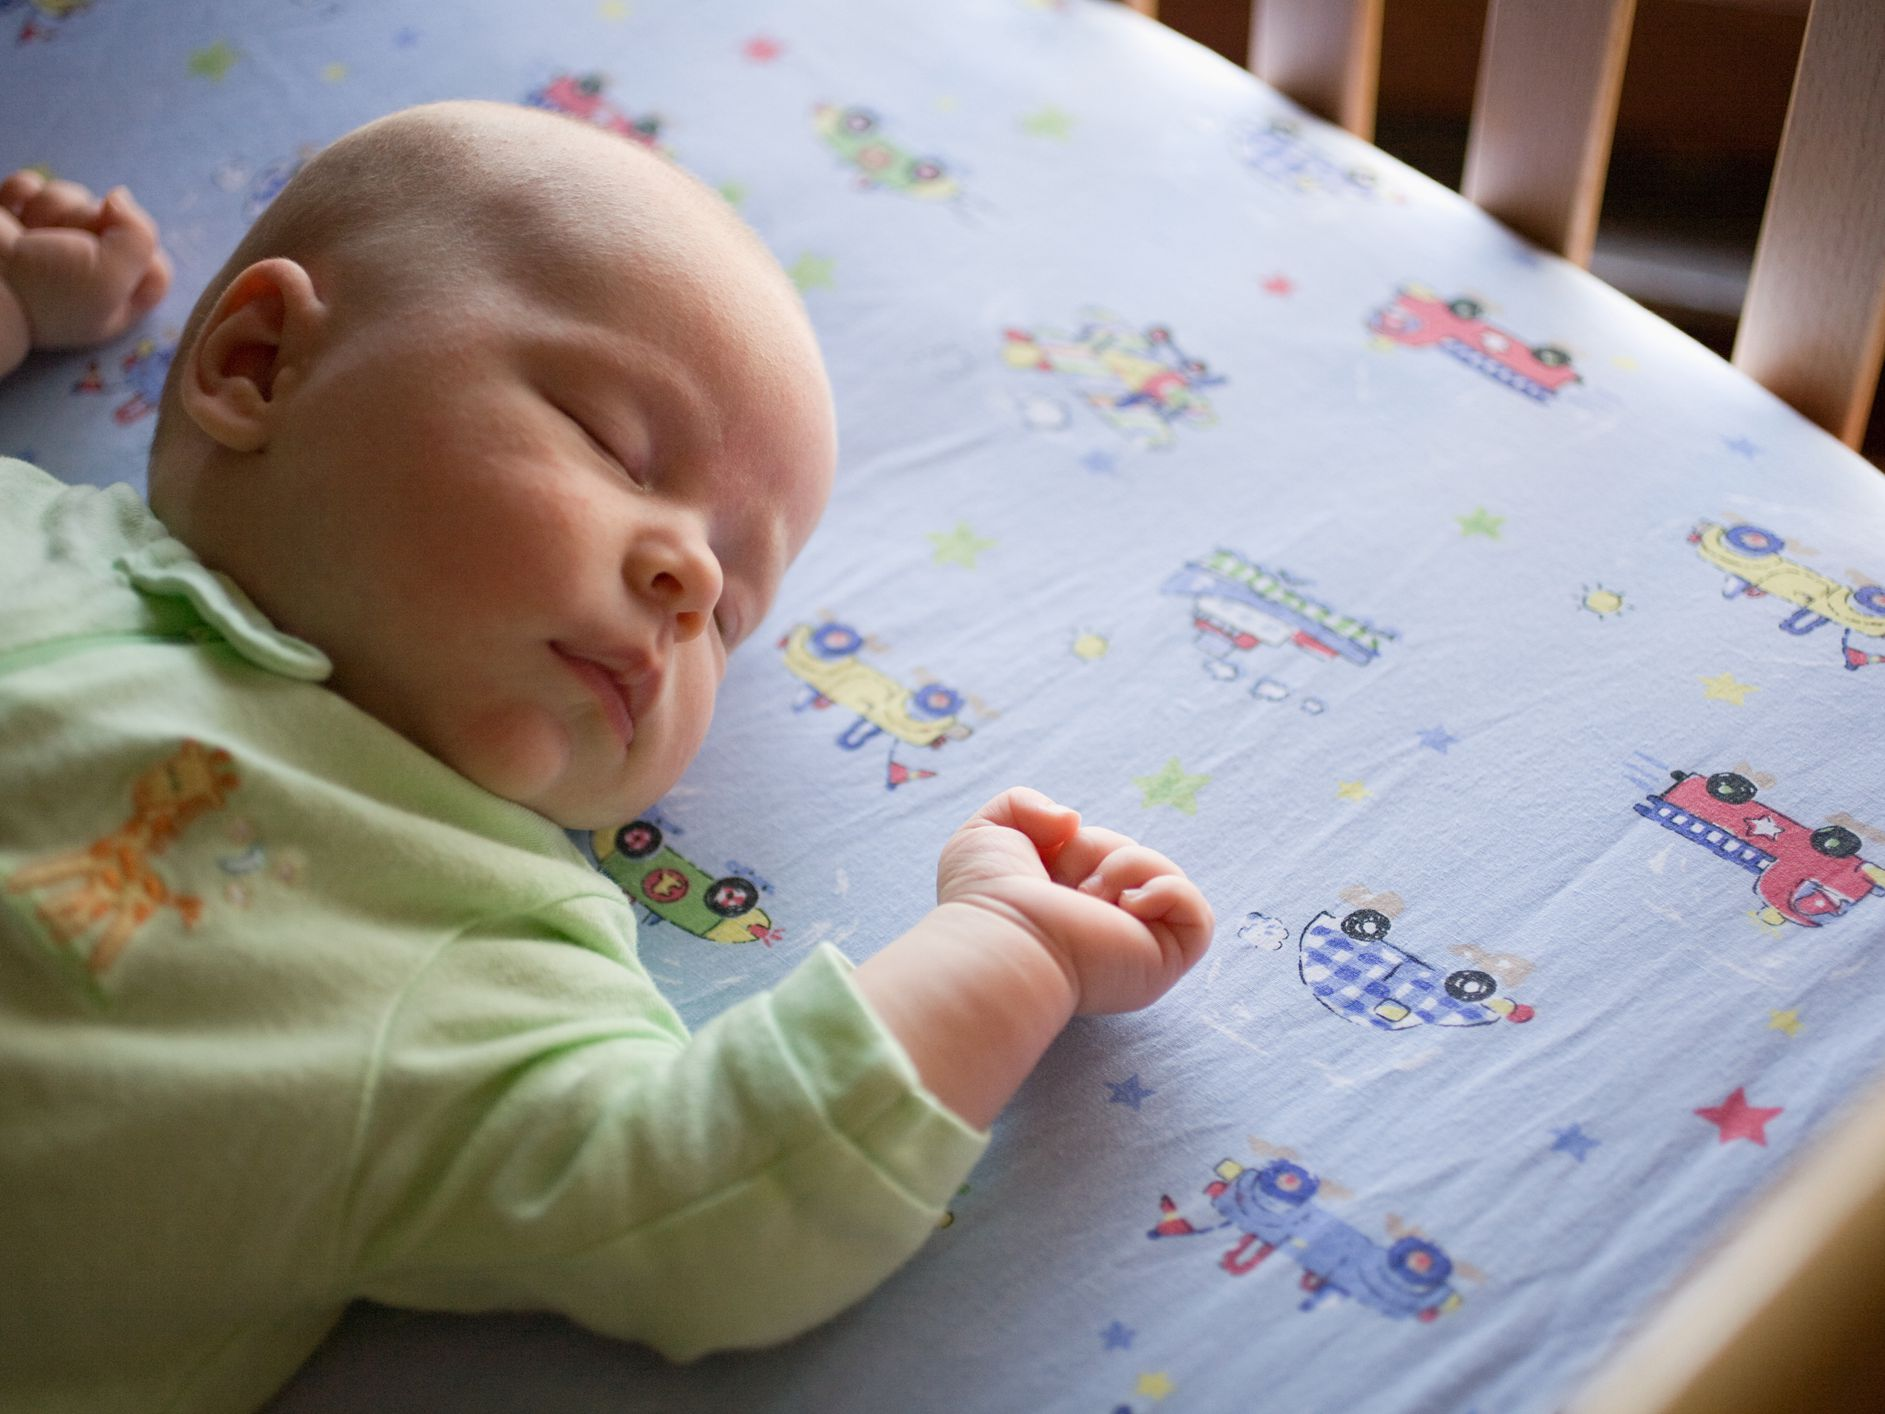 How To Protect Your Child From Suffocation While Sleeping